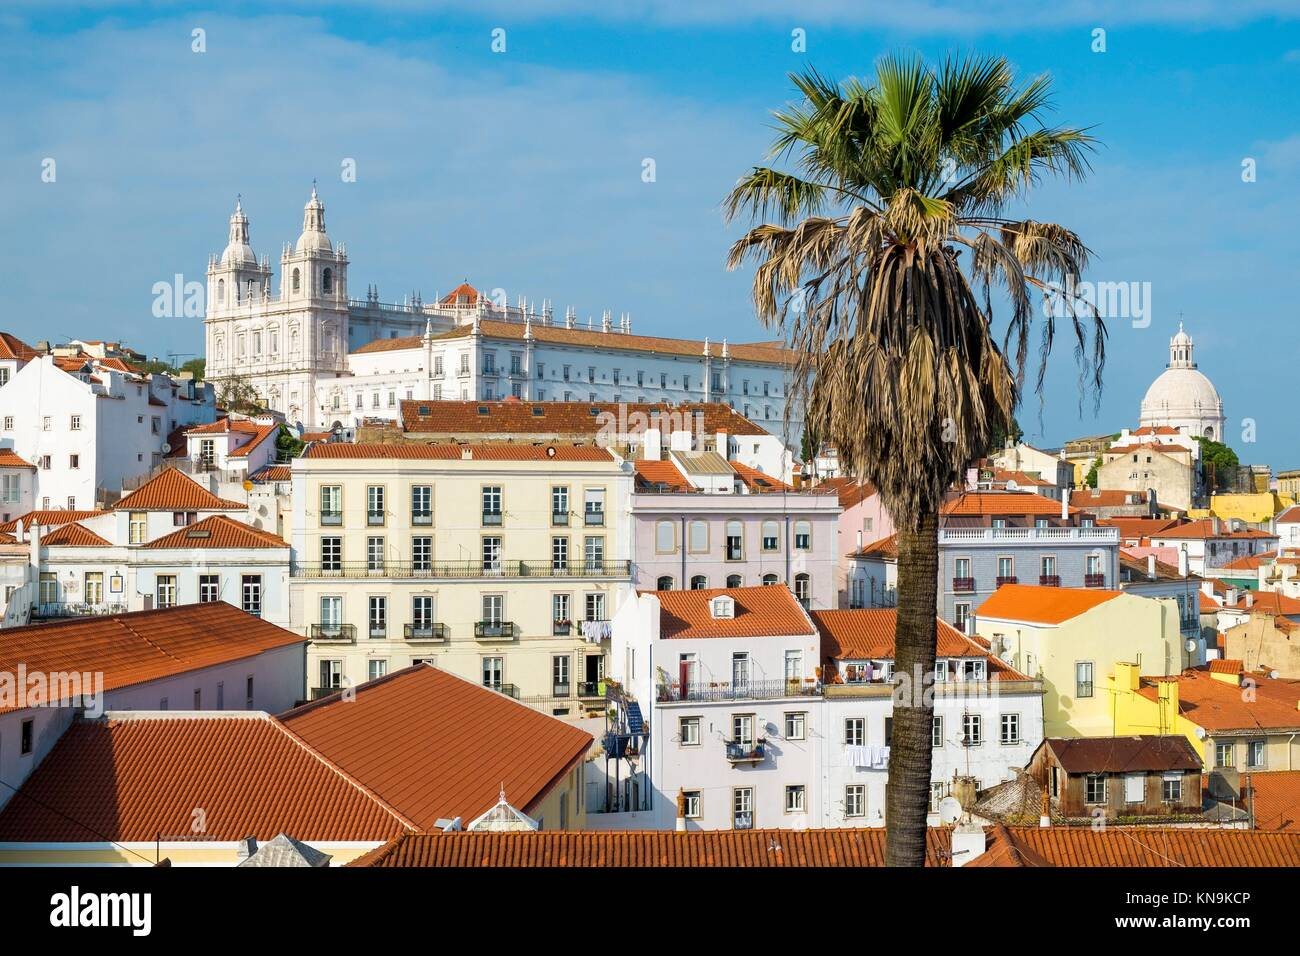 Panoramic of Alfama district in Lisbon Portugal. - Stock Image